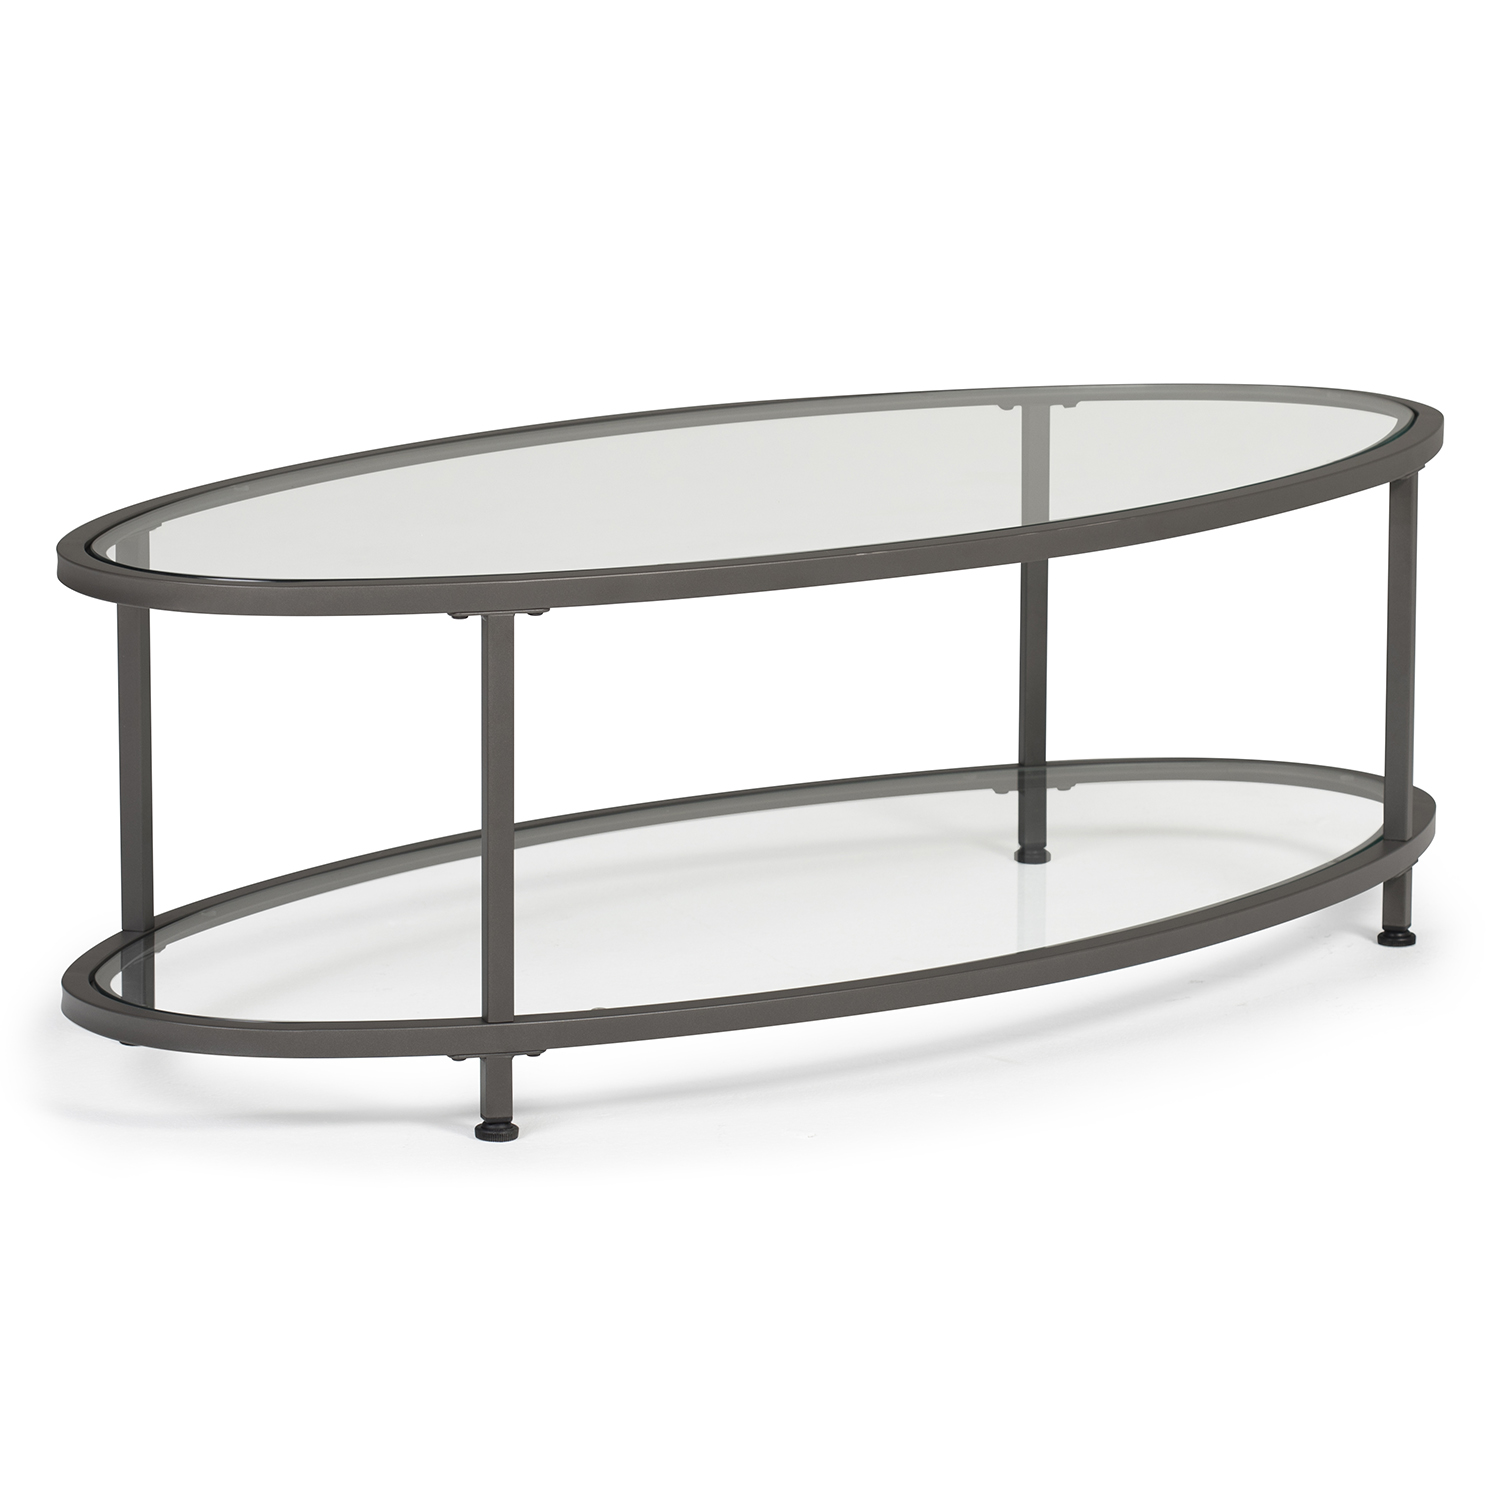 camber modern oval coffee table 48 w in pewter clear glass item 71014 studio designs